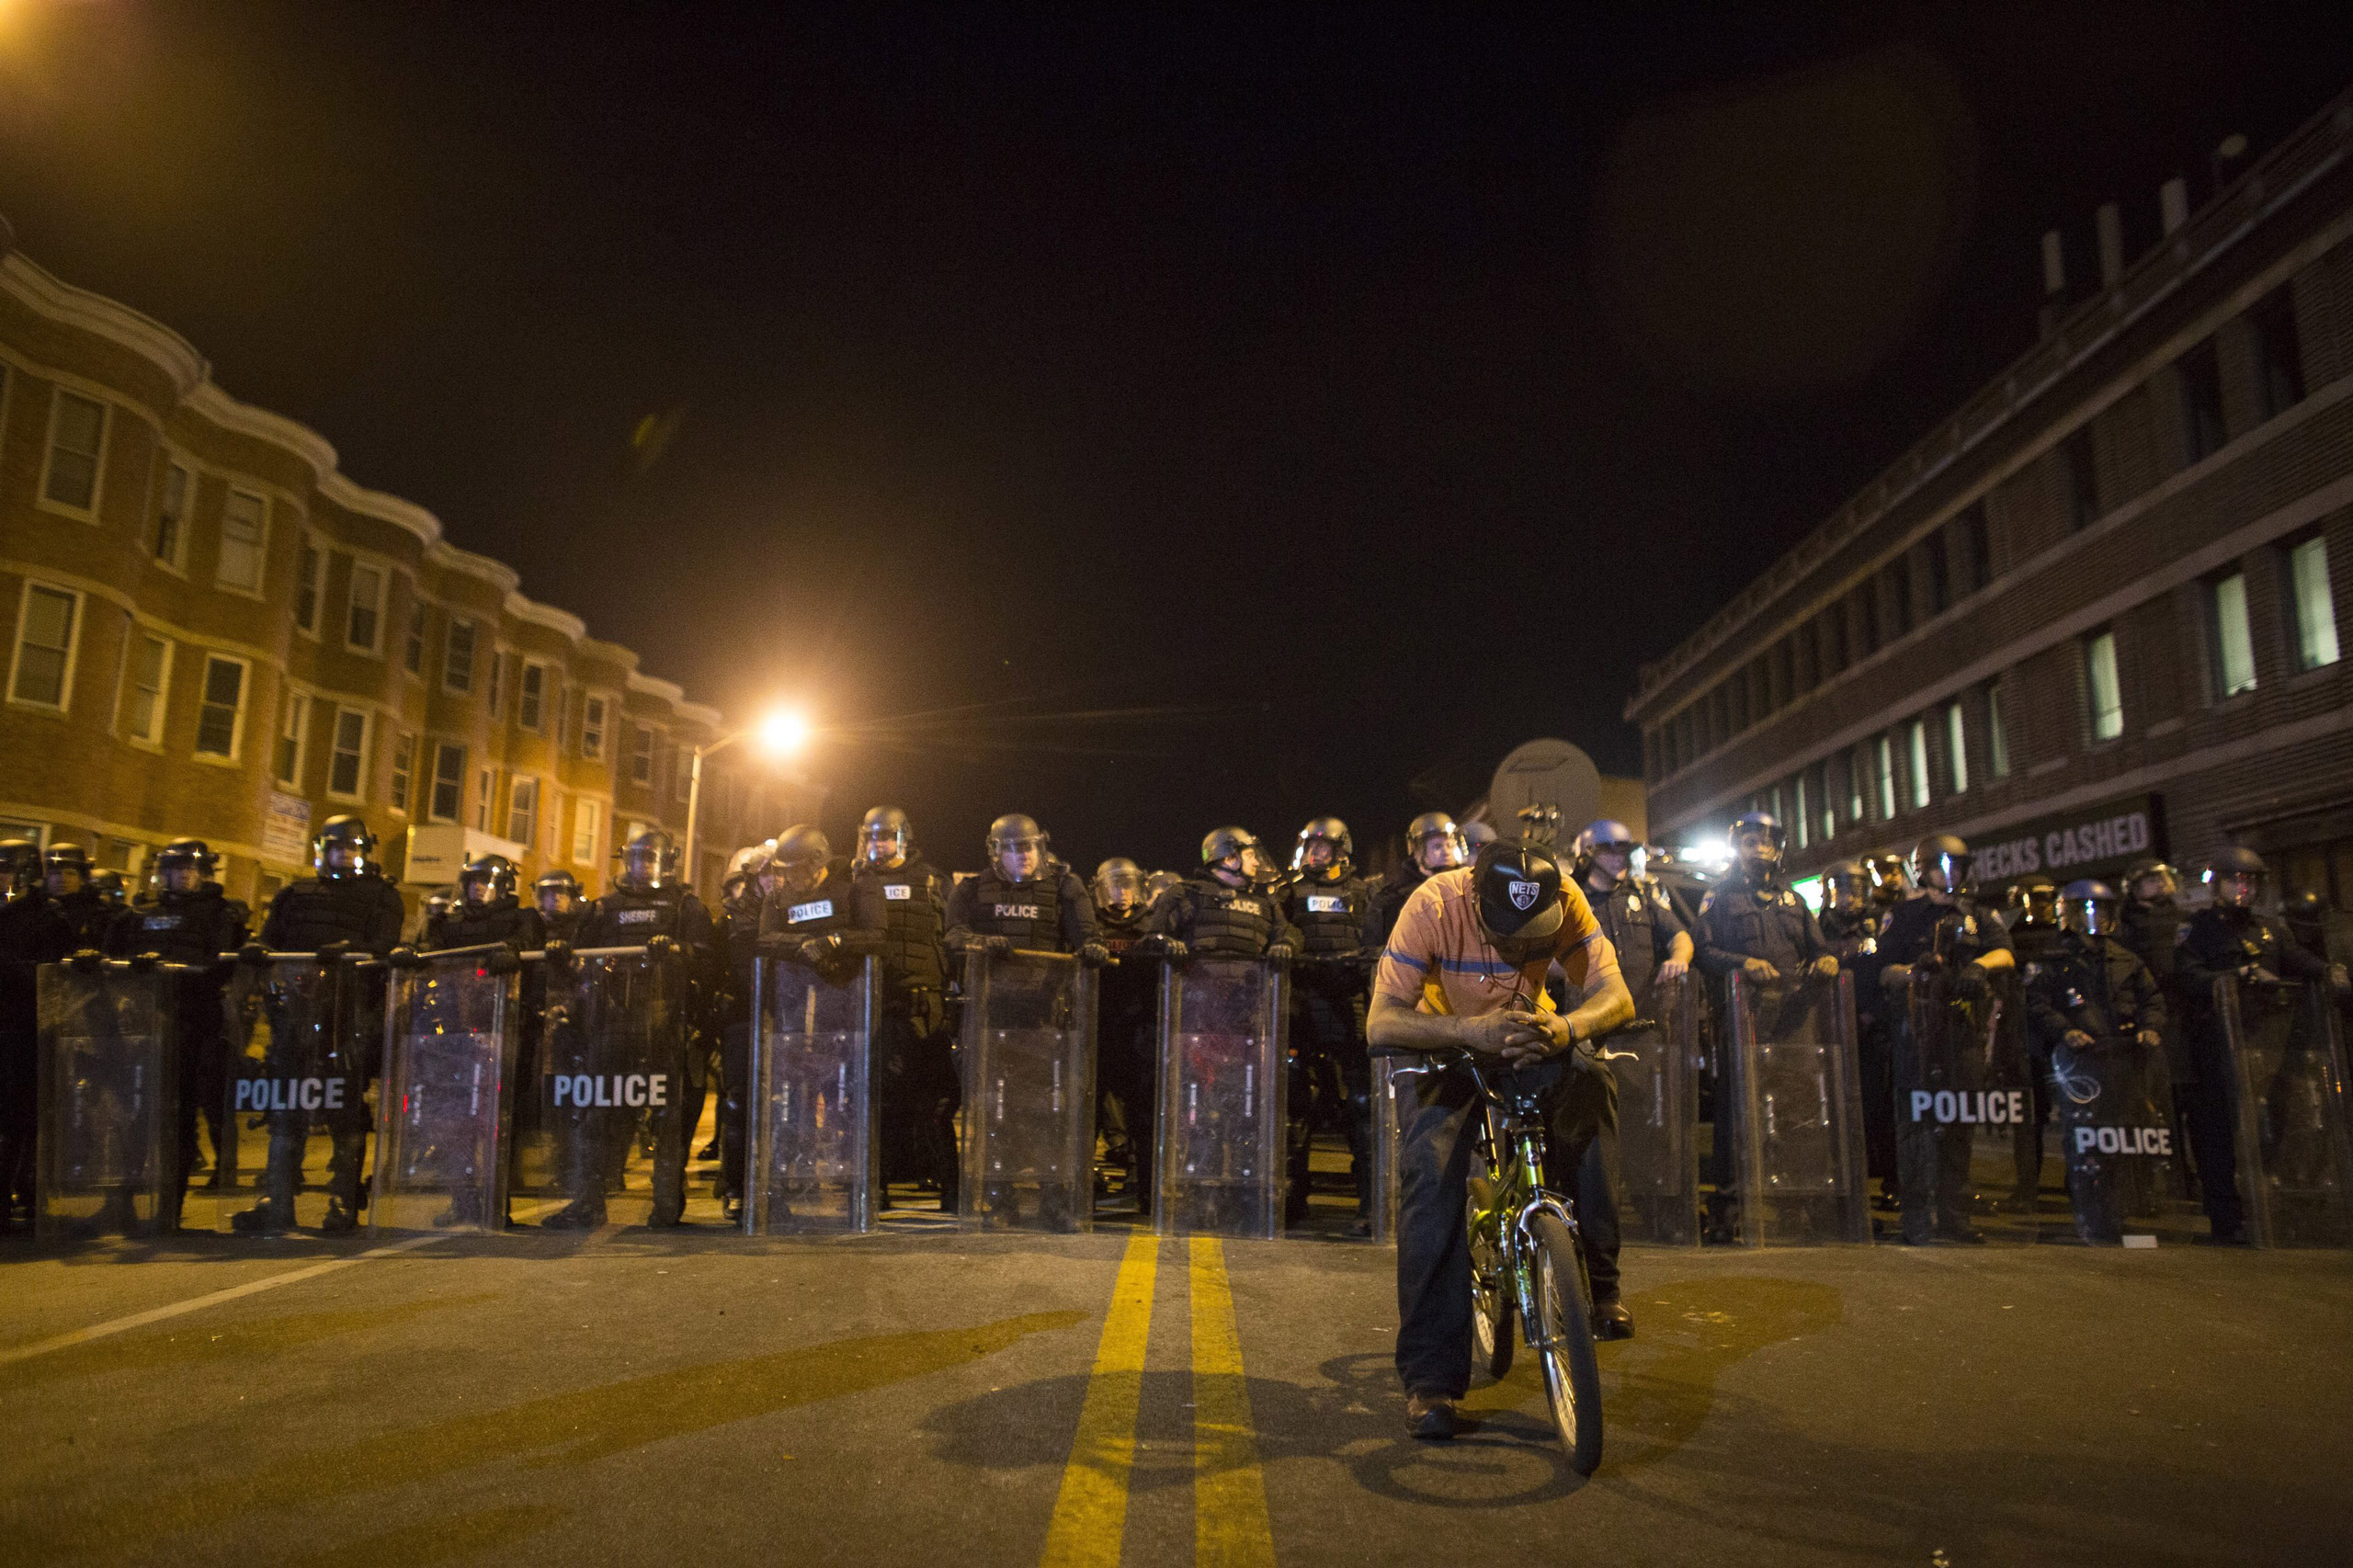 A protester on his bike is seen in front of a line of policemen in riot gear during a 10 p.m. curfew in Baltimore on Apr. 28, 2015.